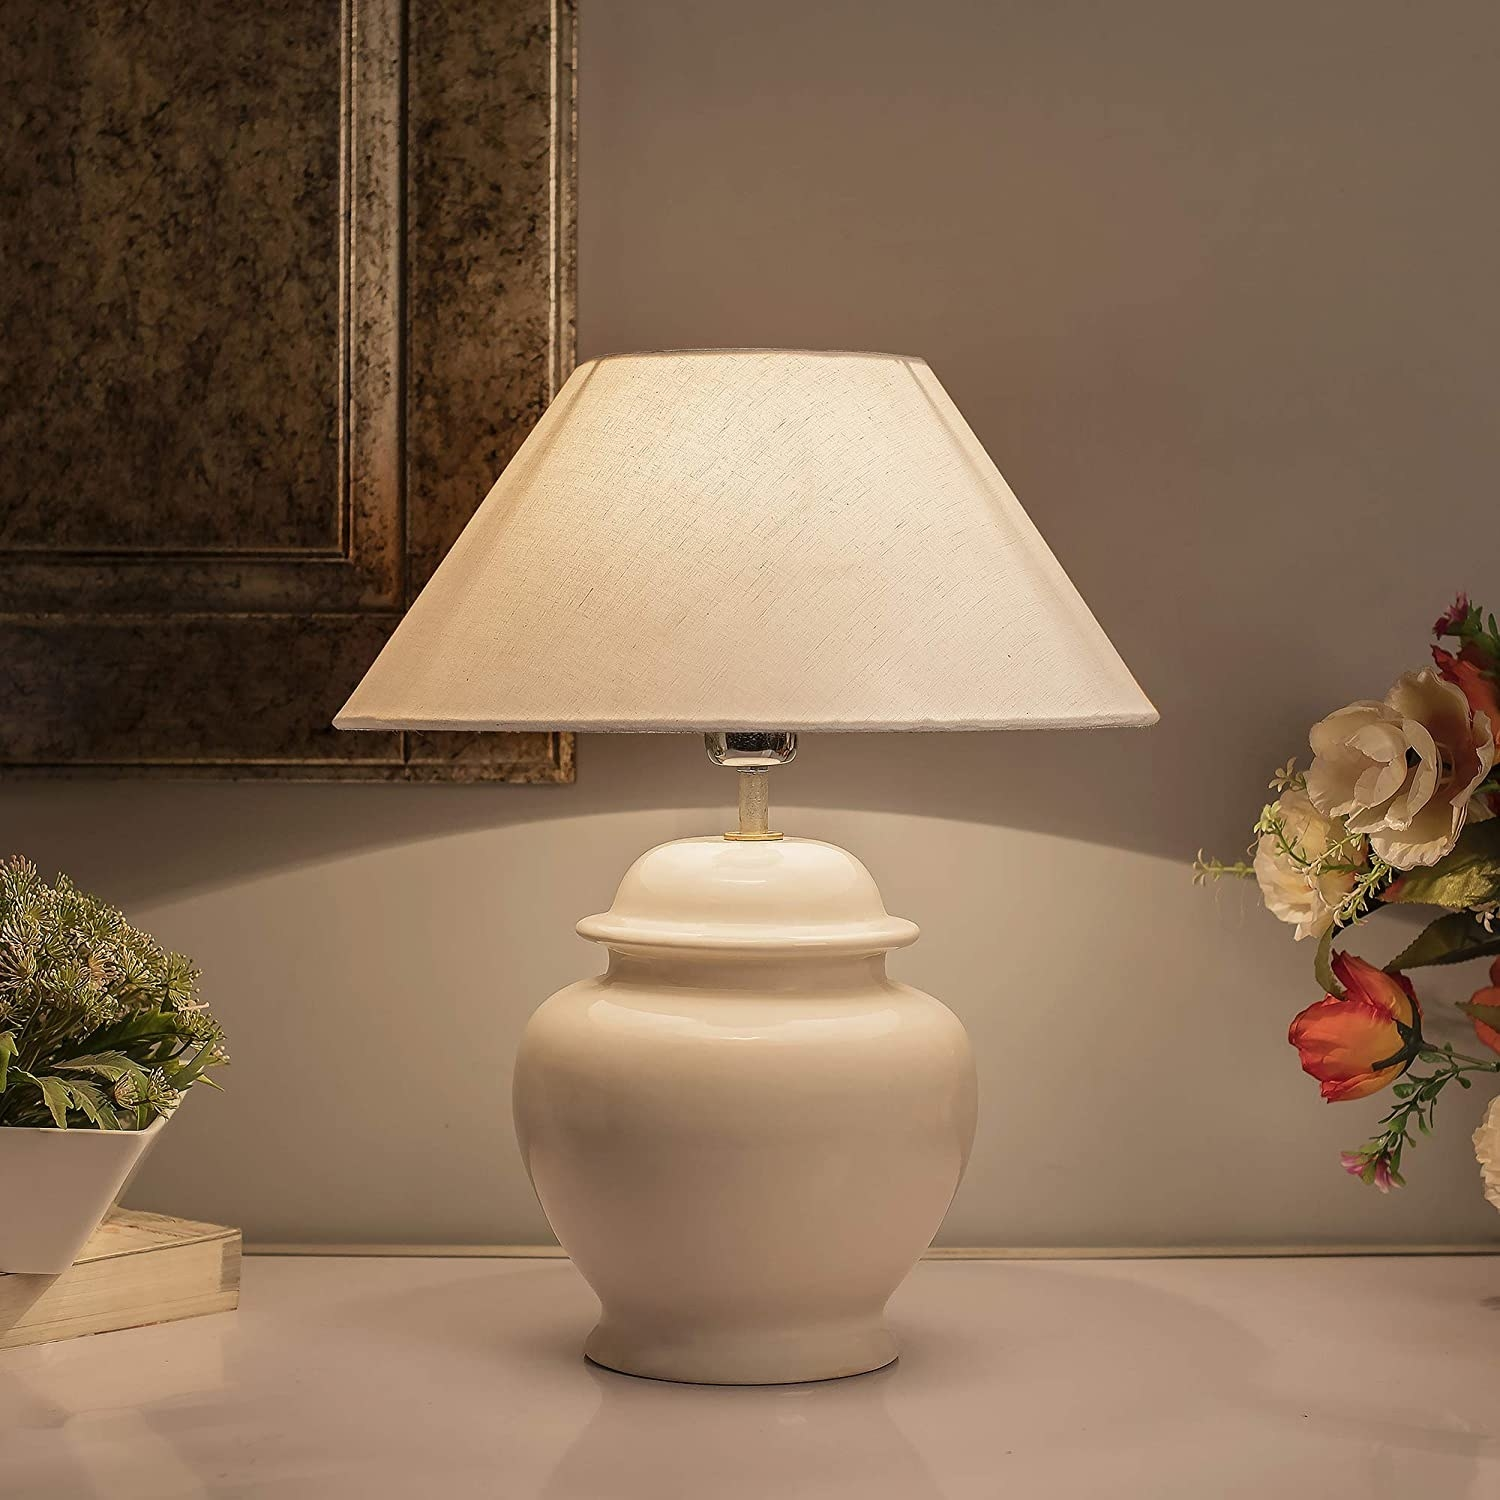 A traditional round lamp with a conical lampshade.